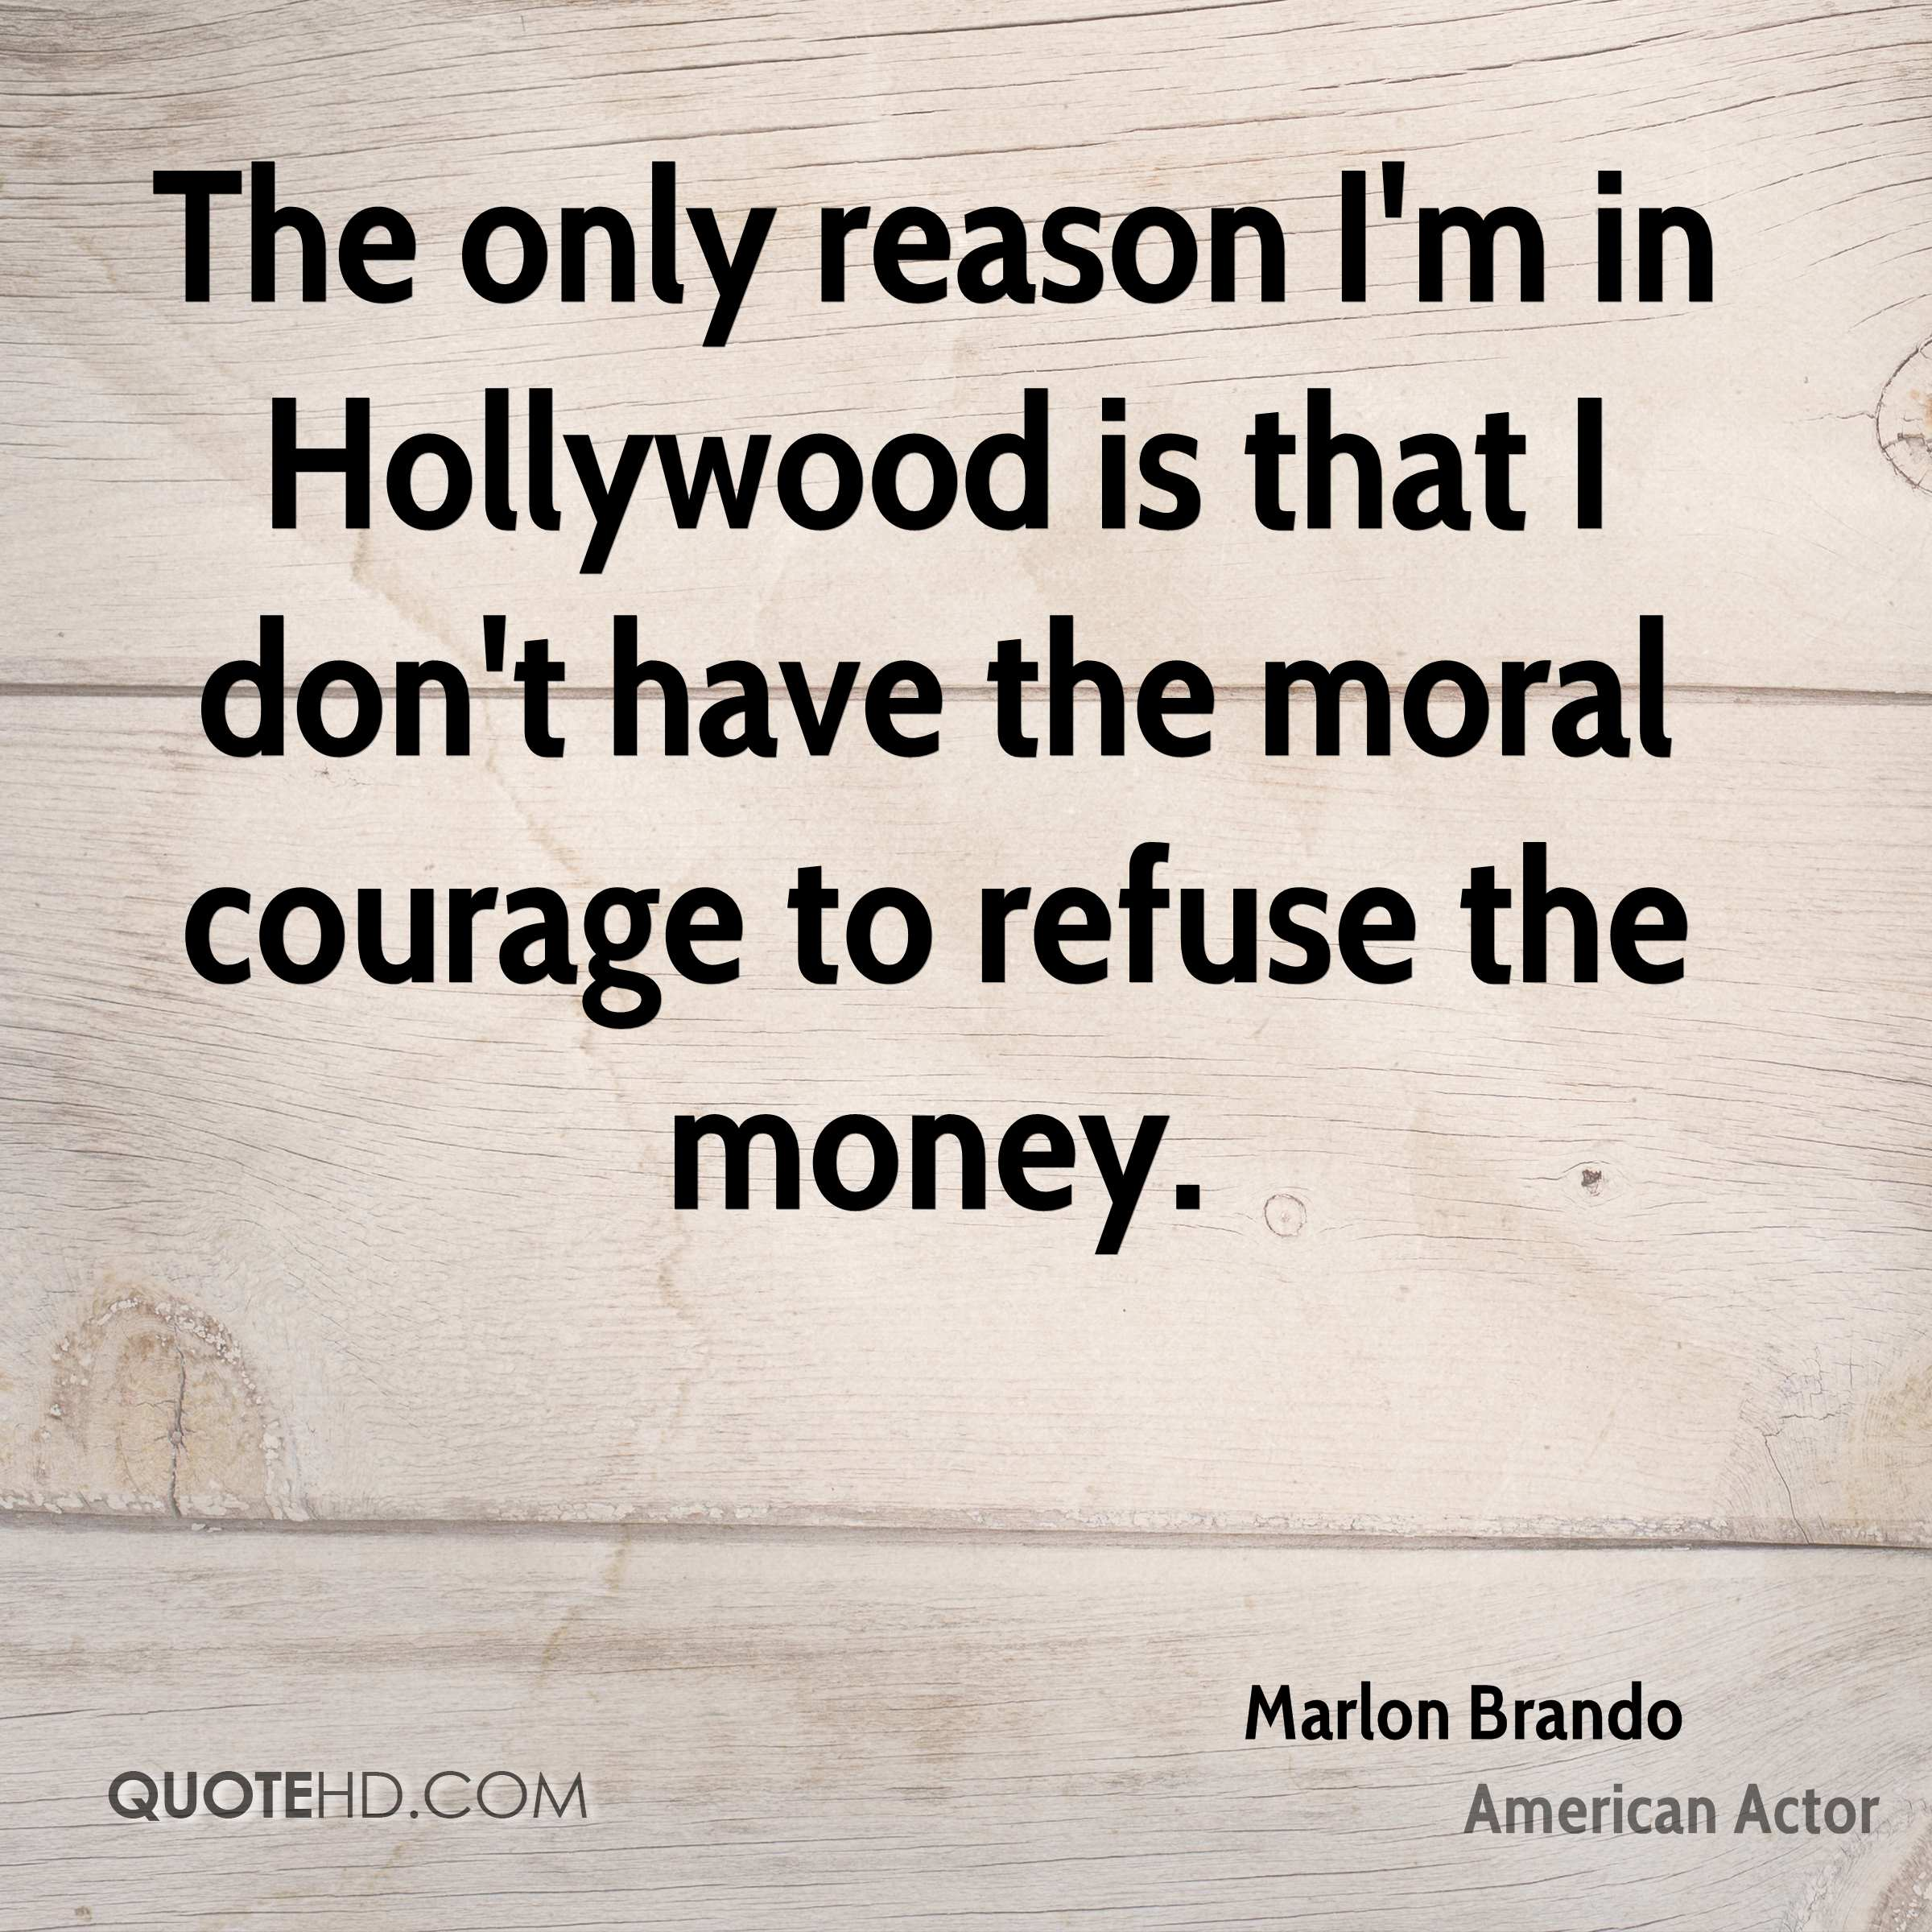 The only reason I'm in Hollywood is that I don't have the moral courage to refuse the money.